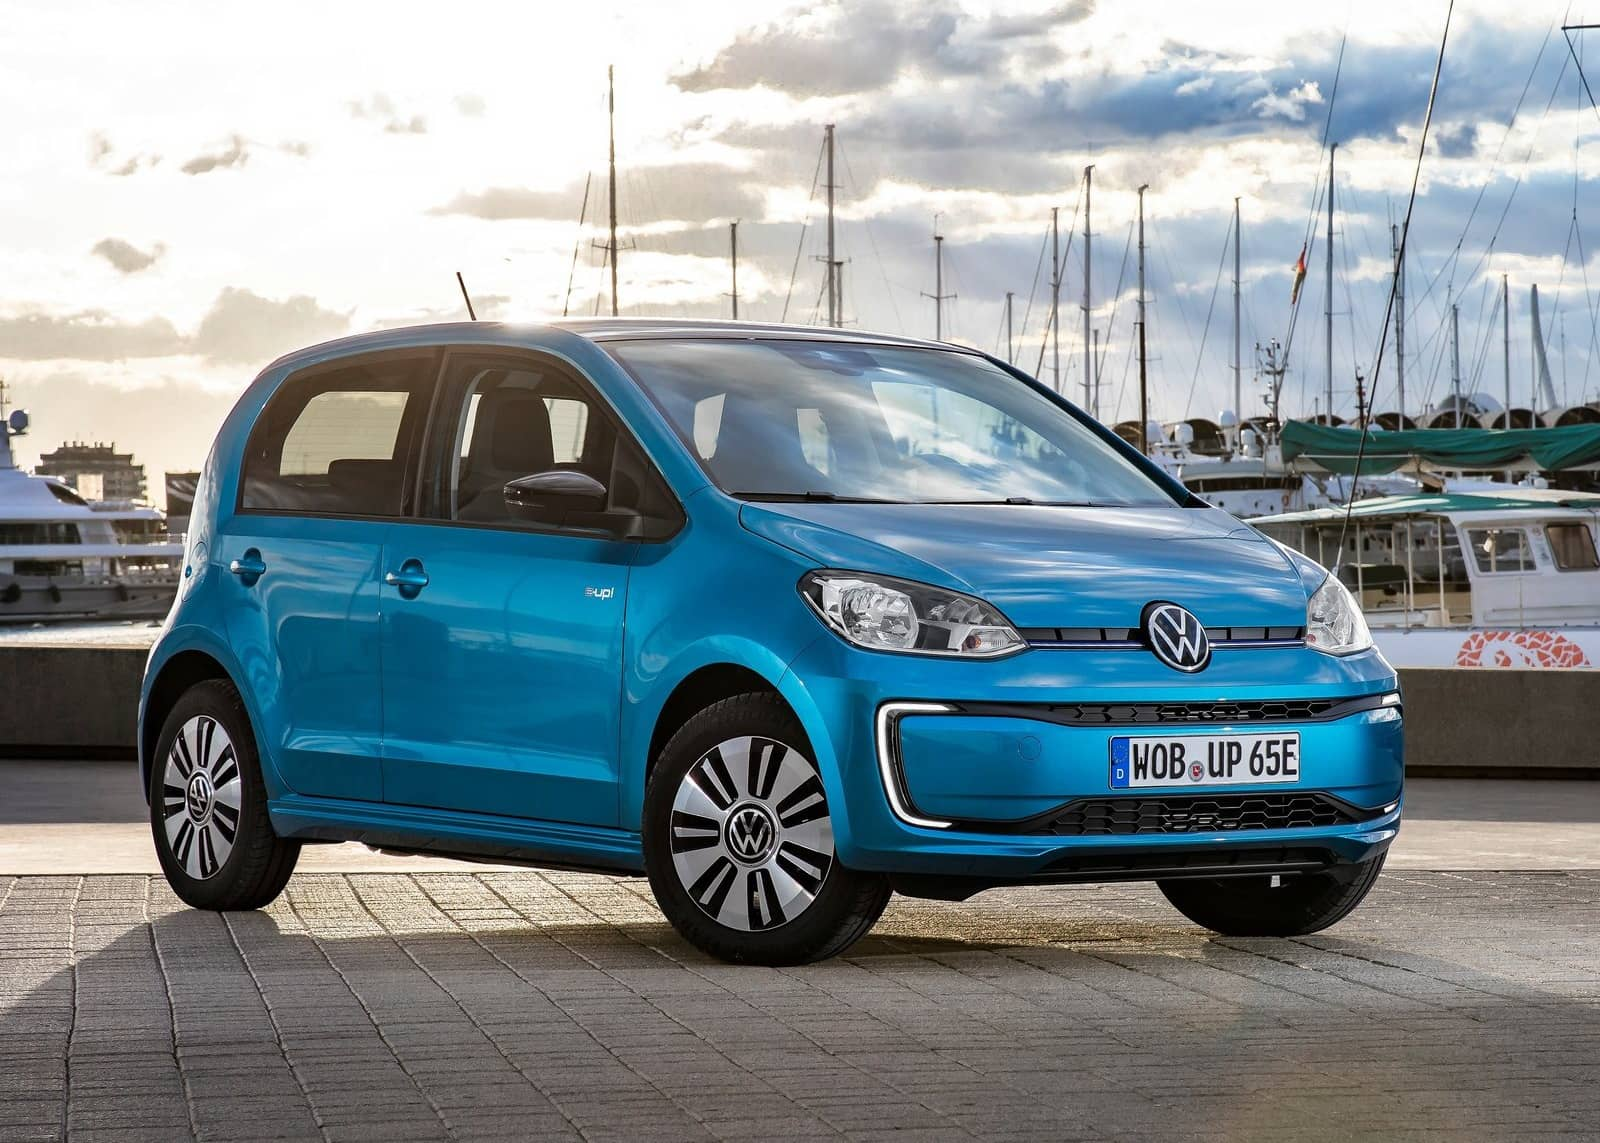 Volkswagen-e-Up-2020-1600-05